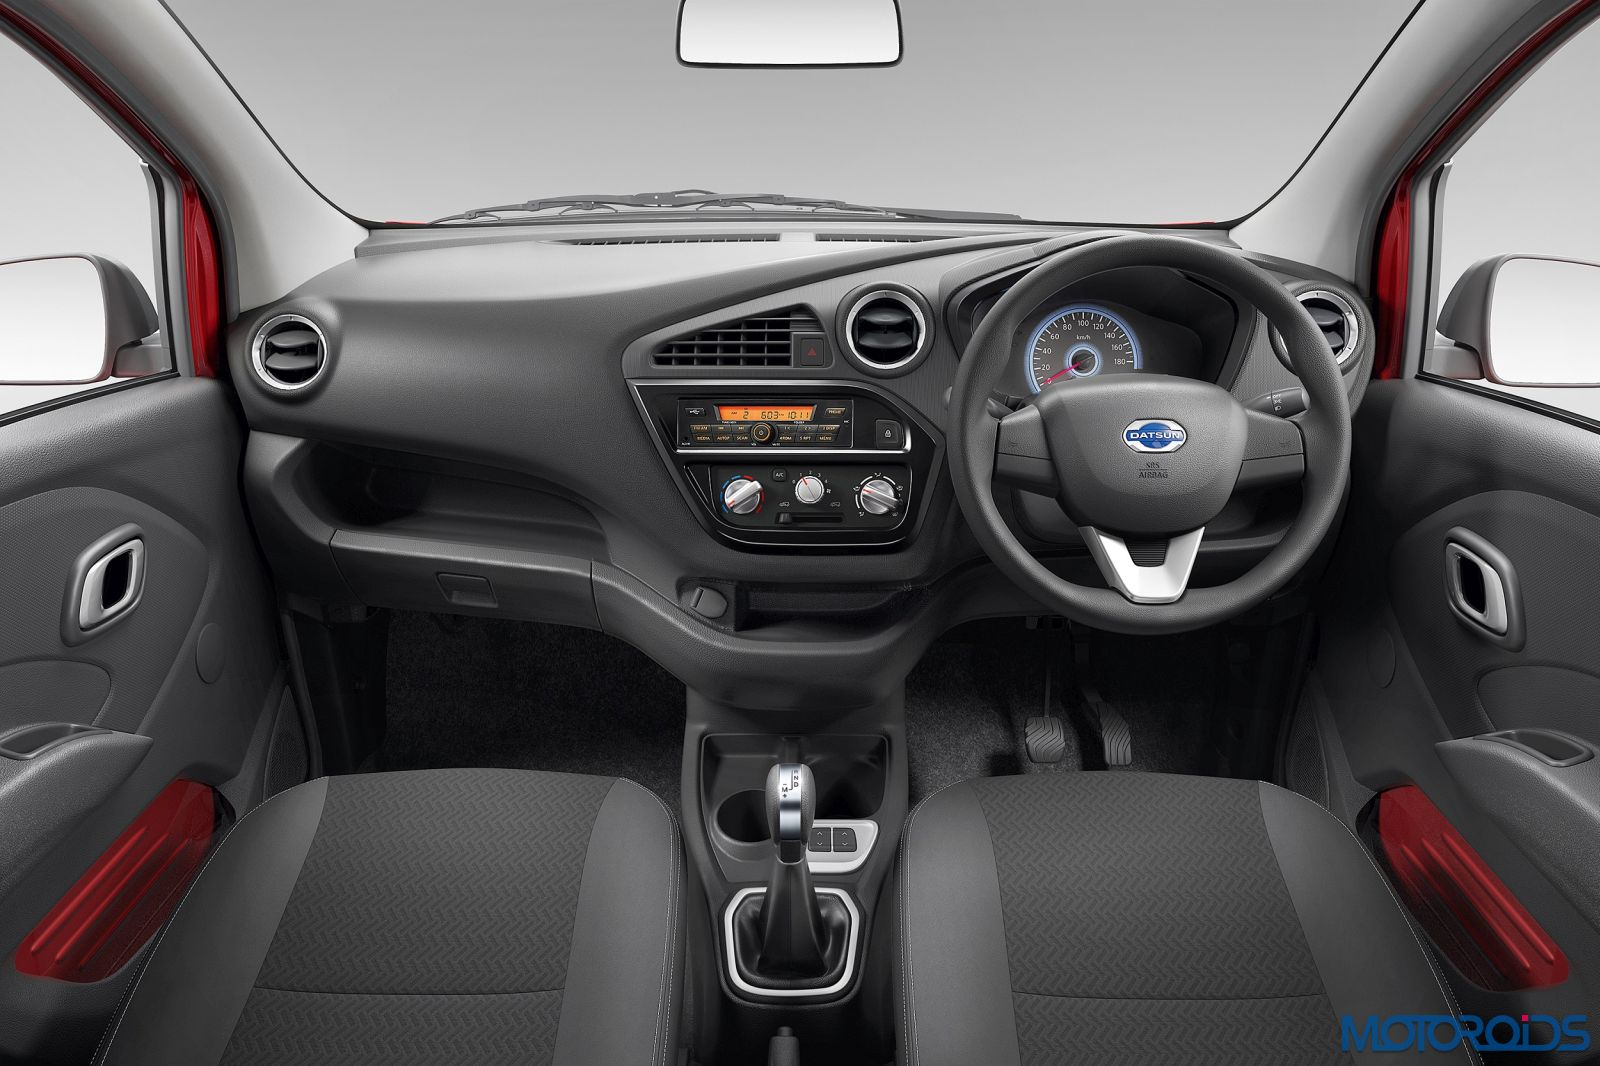 The-new-Datsun-redi-GO-Smart-Drive-Auto-comes-with-exciting-new-features-Dual-Driving-Mode-Rush-Hour-Mode